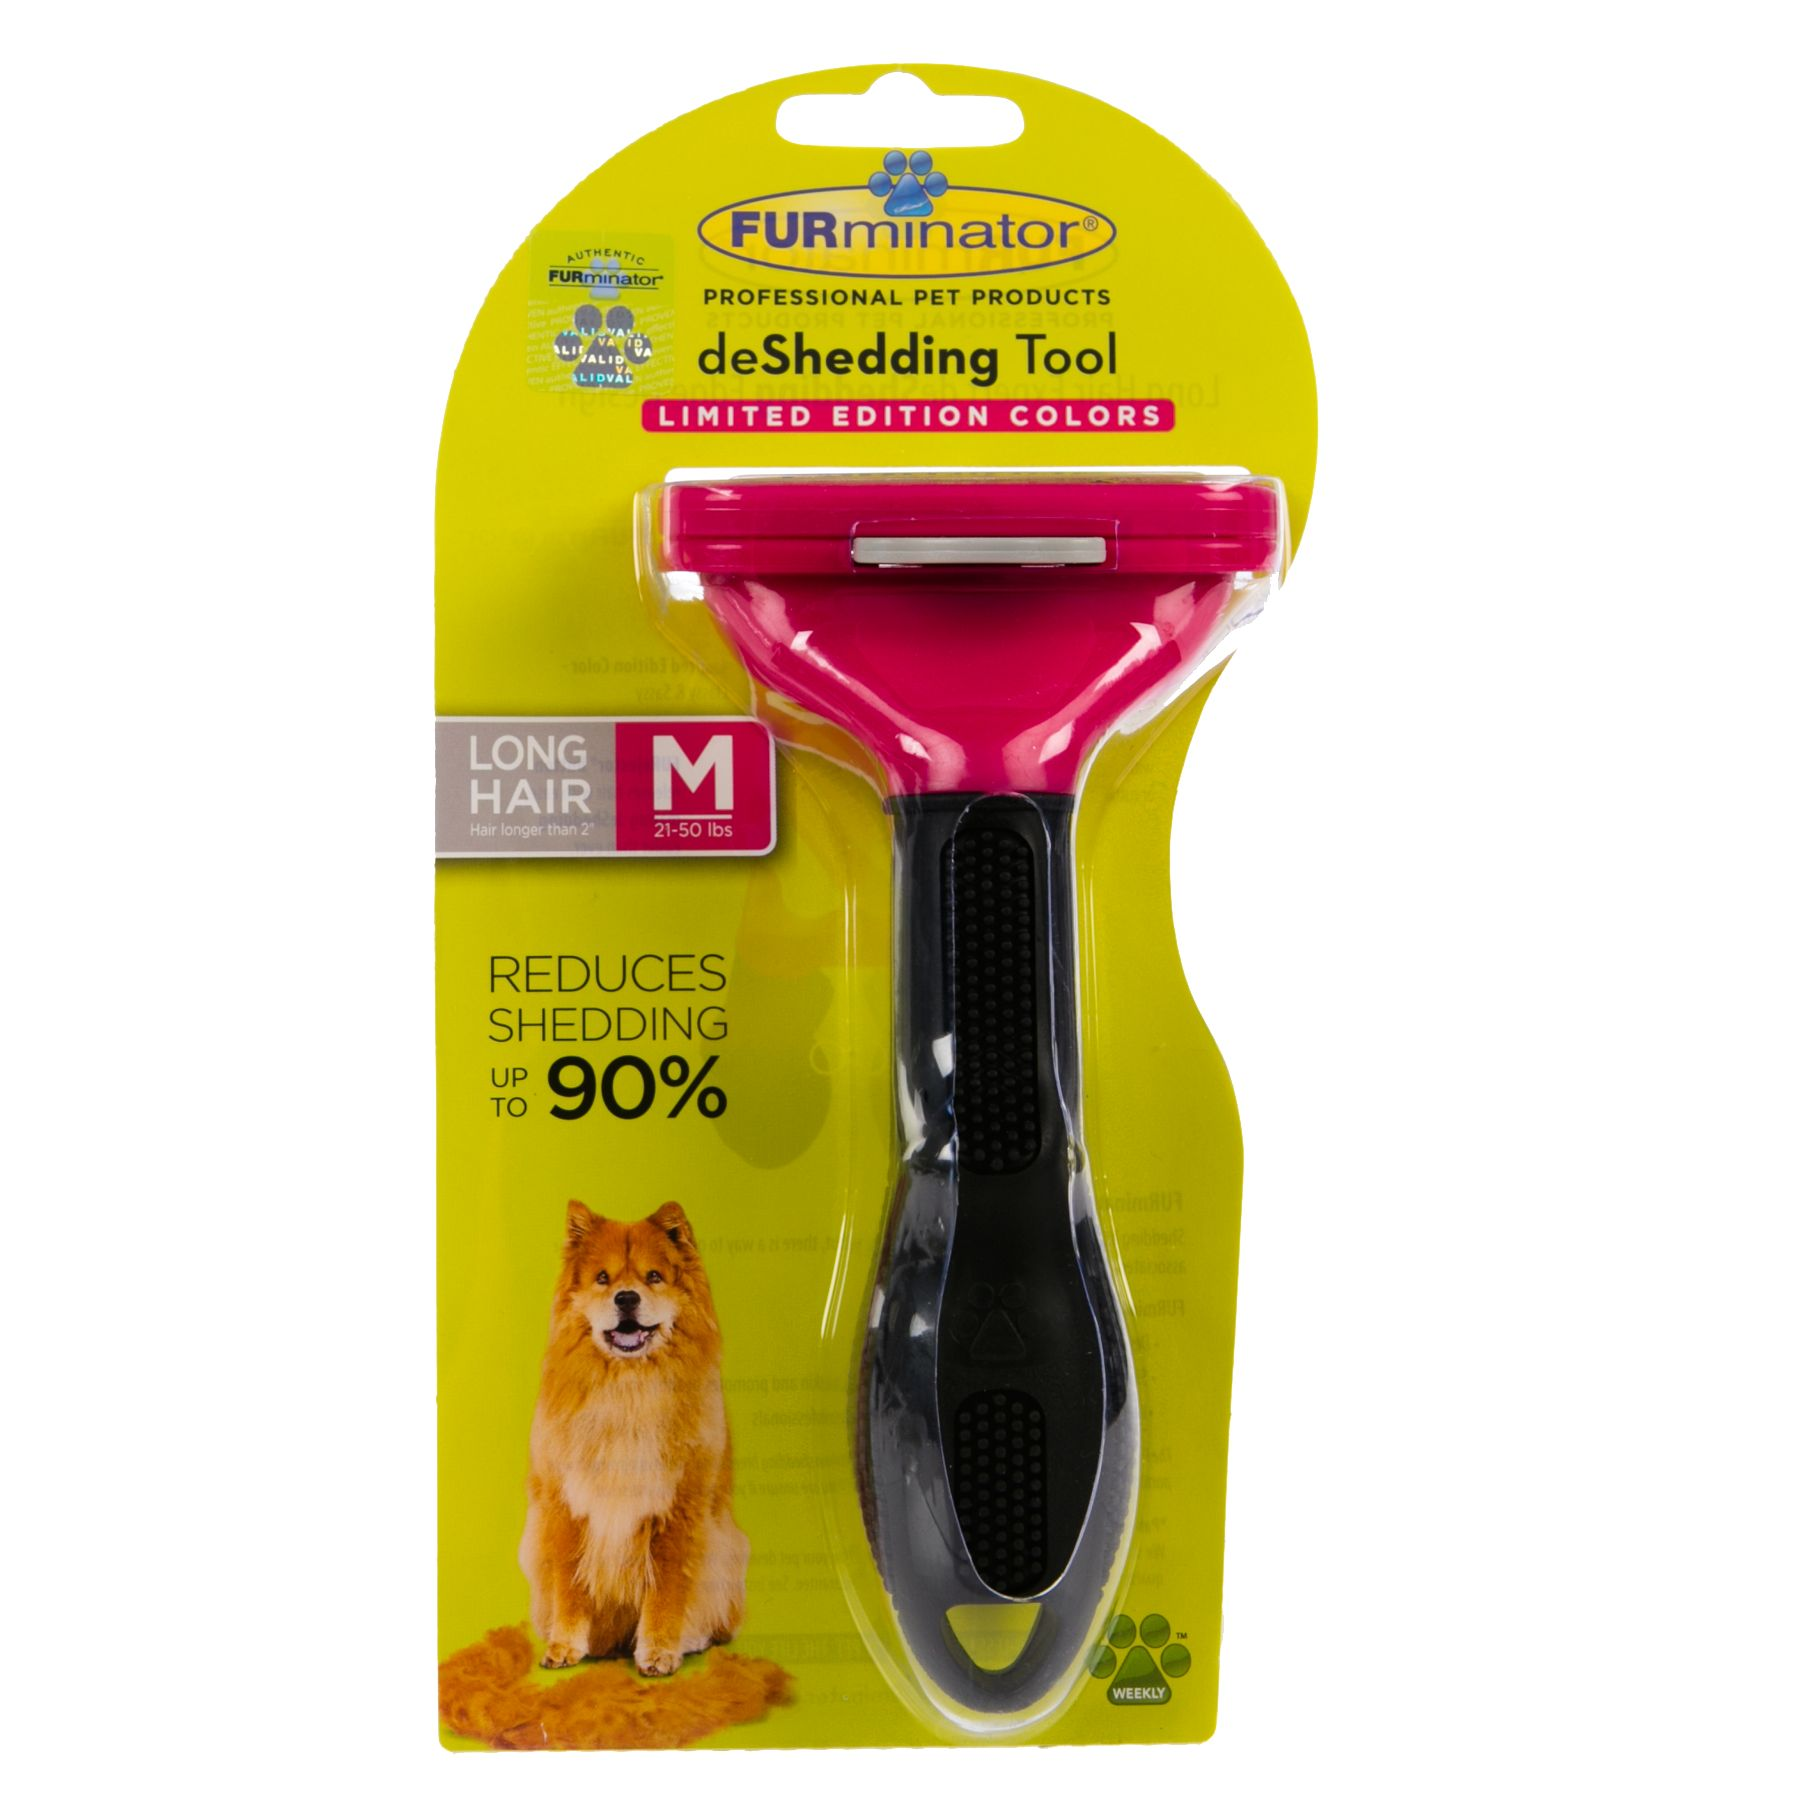 FURminator deShedding Long Haired Dog Tool size: Medium 5238721